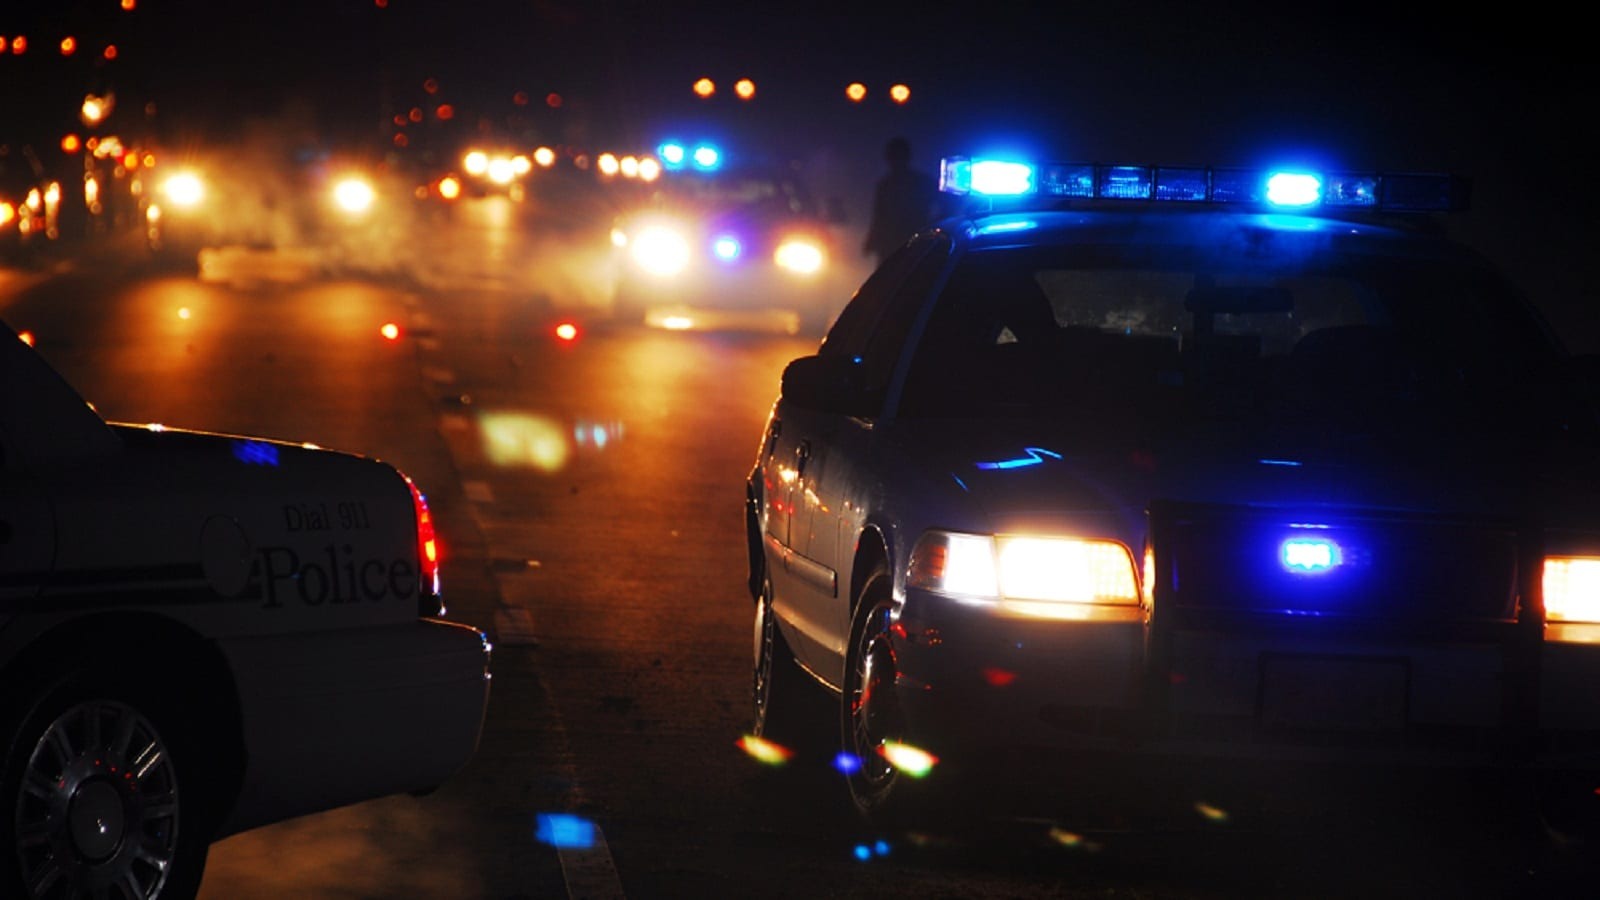 Car Accident Scene At Night Stock Photo